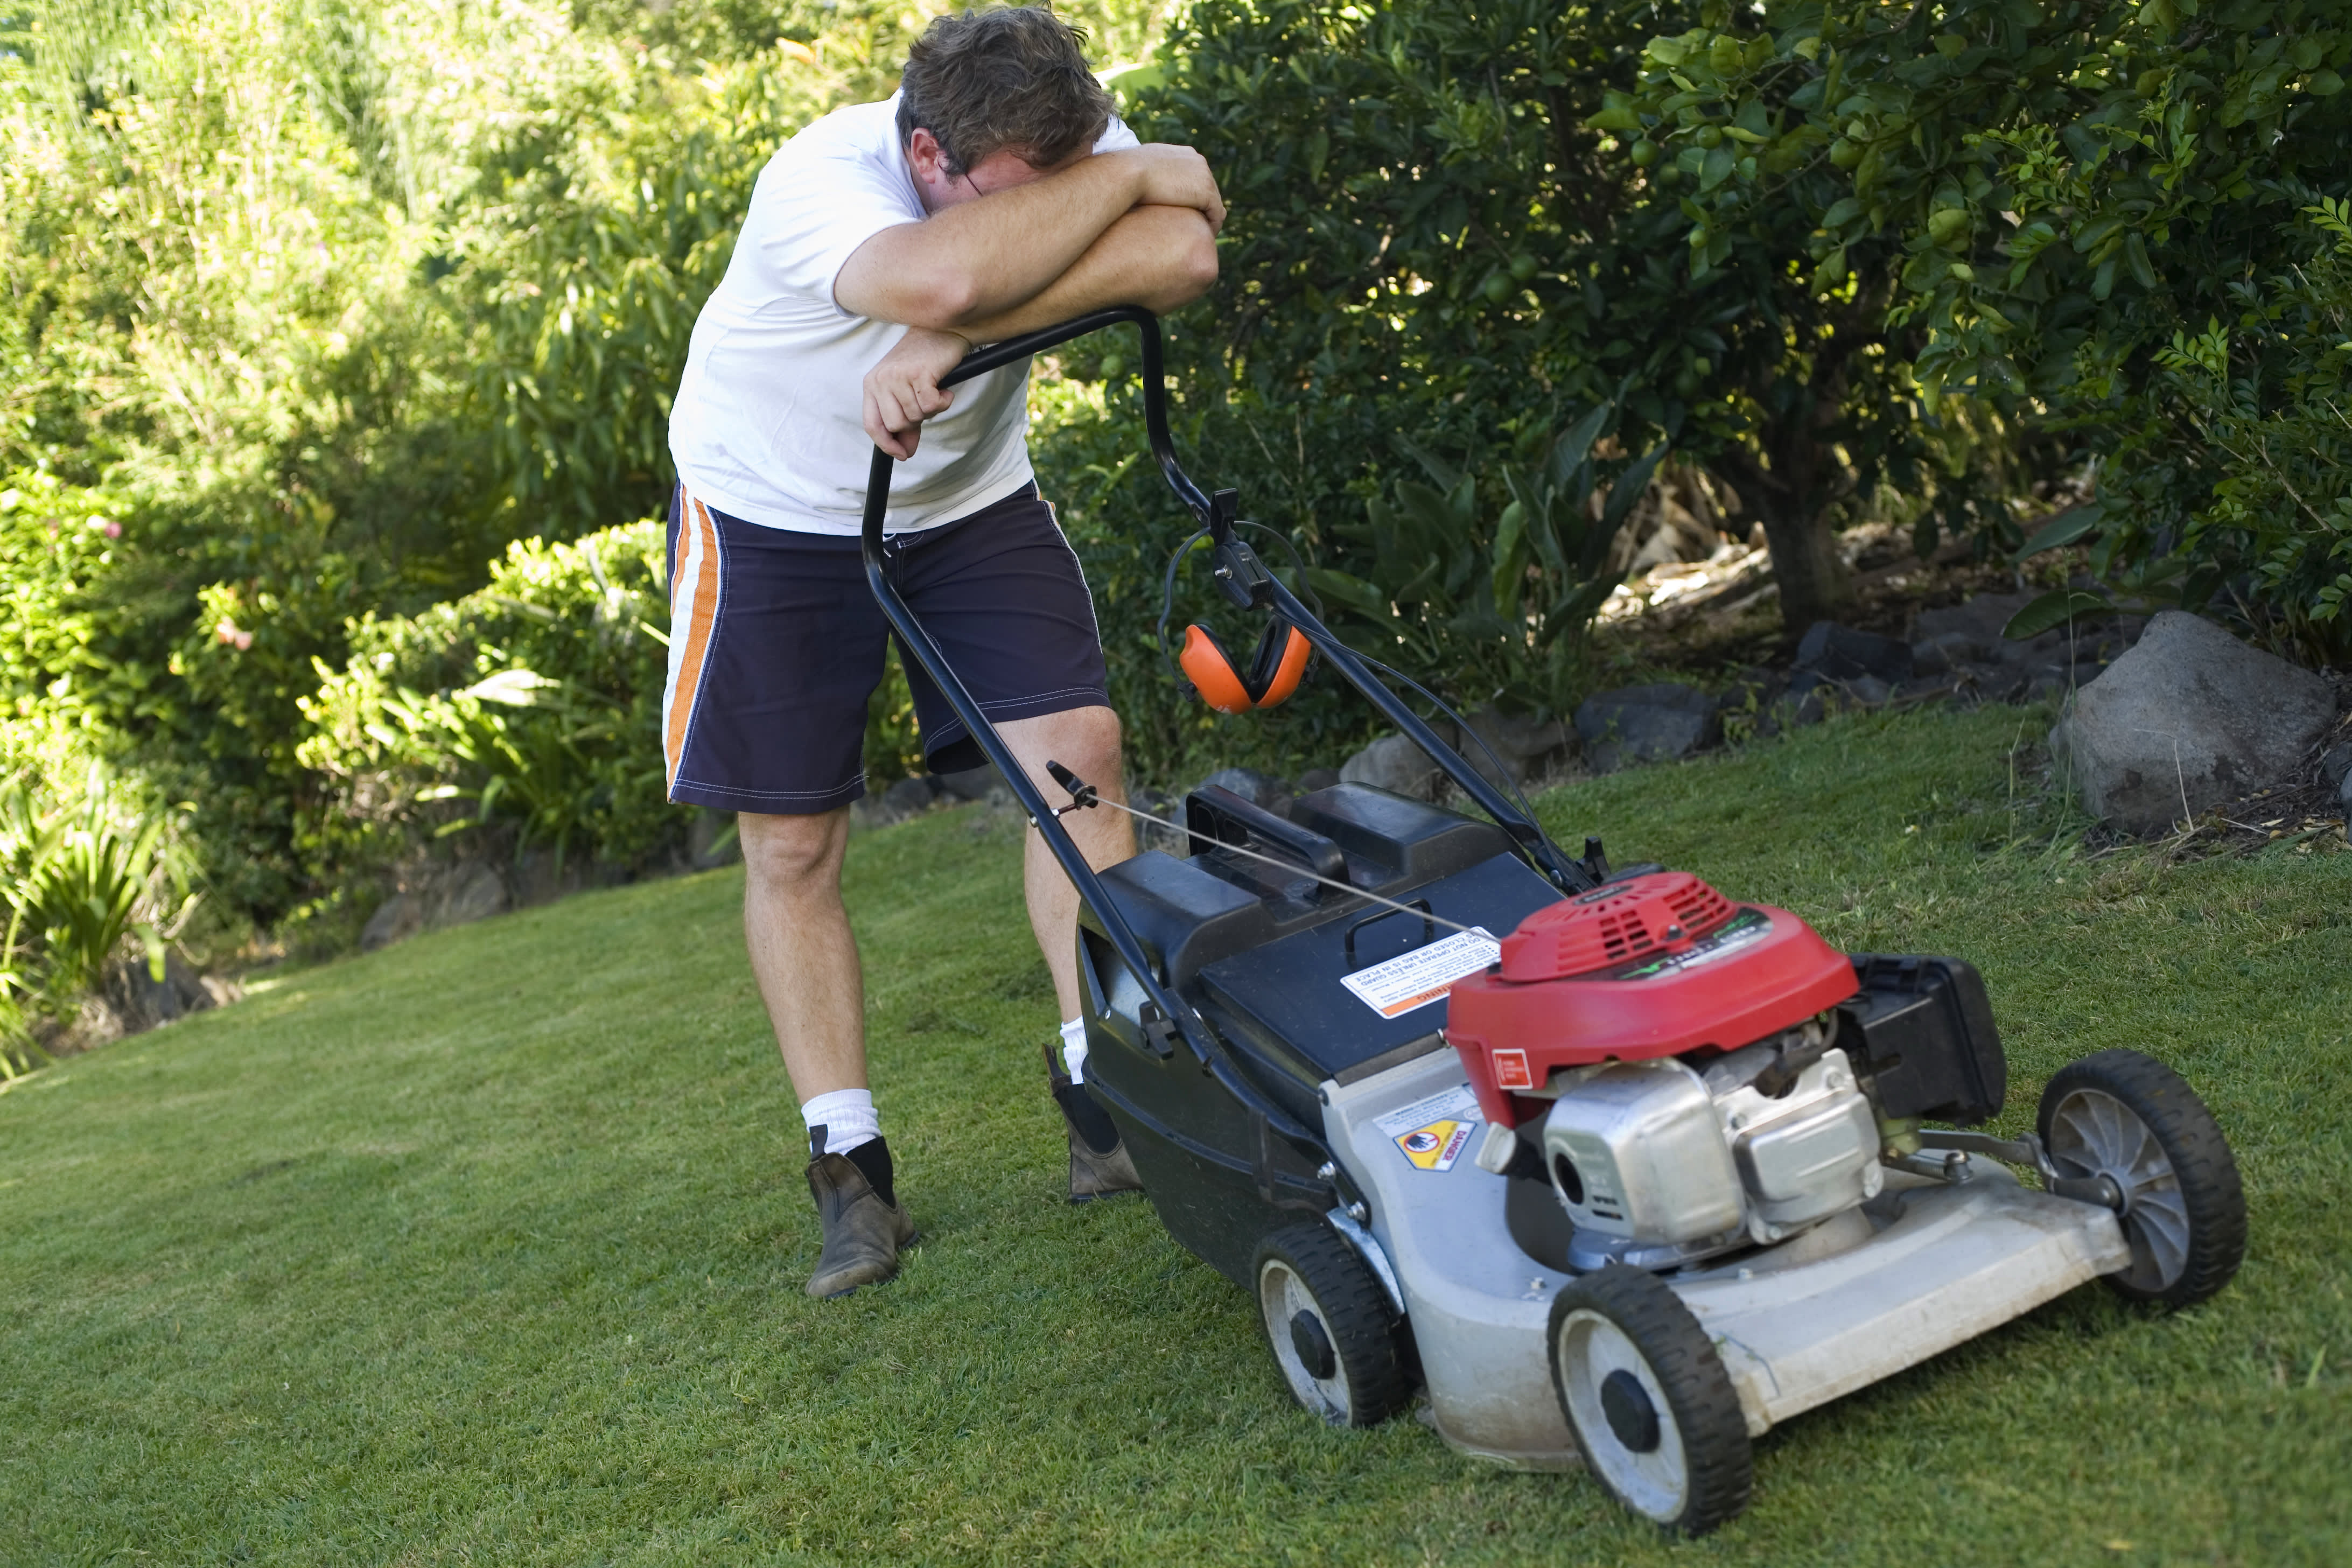 Op-ed: Sometimes it's just worth paying someone to handle various tasks and chores